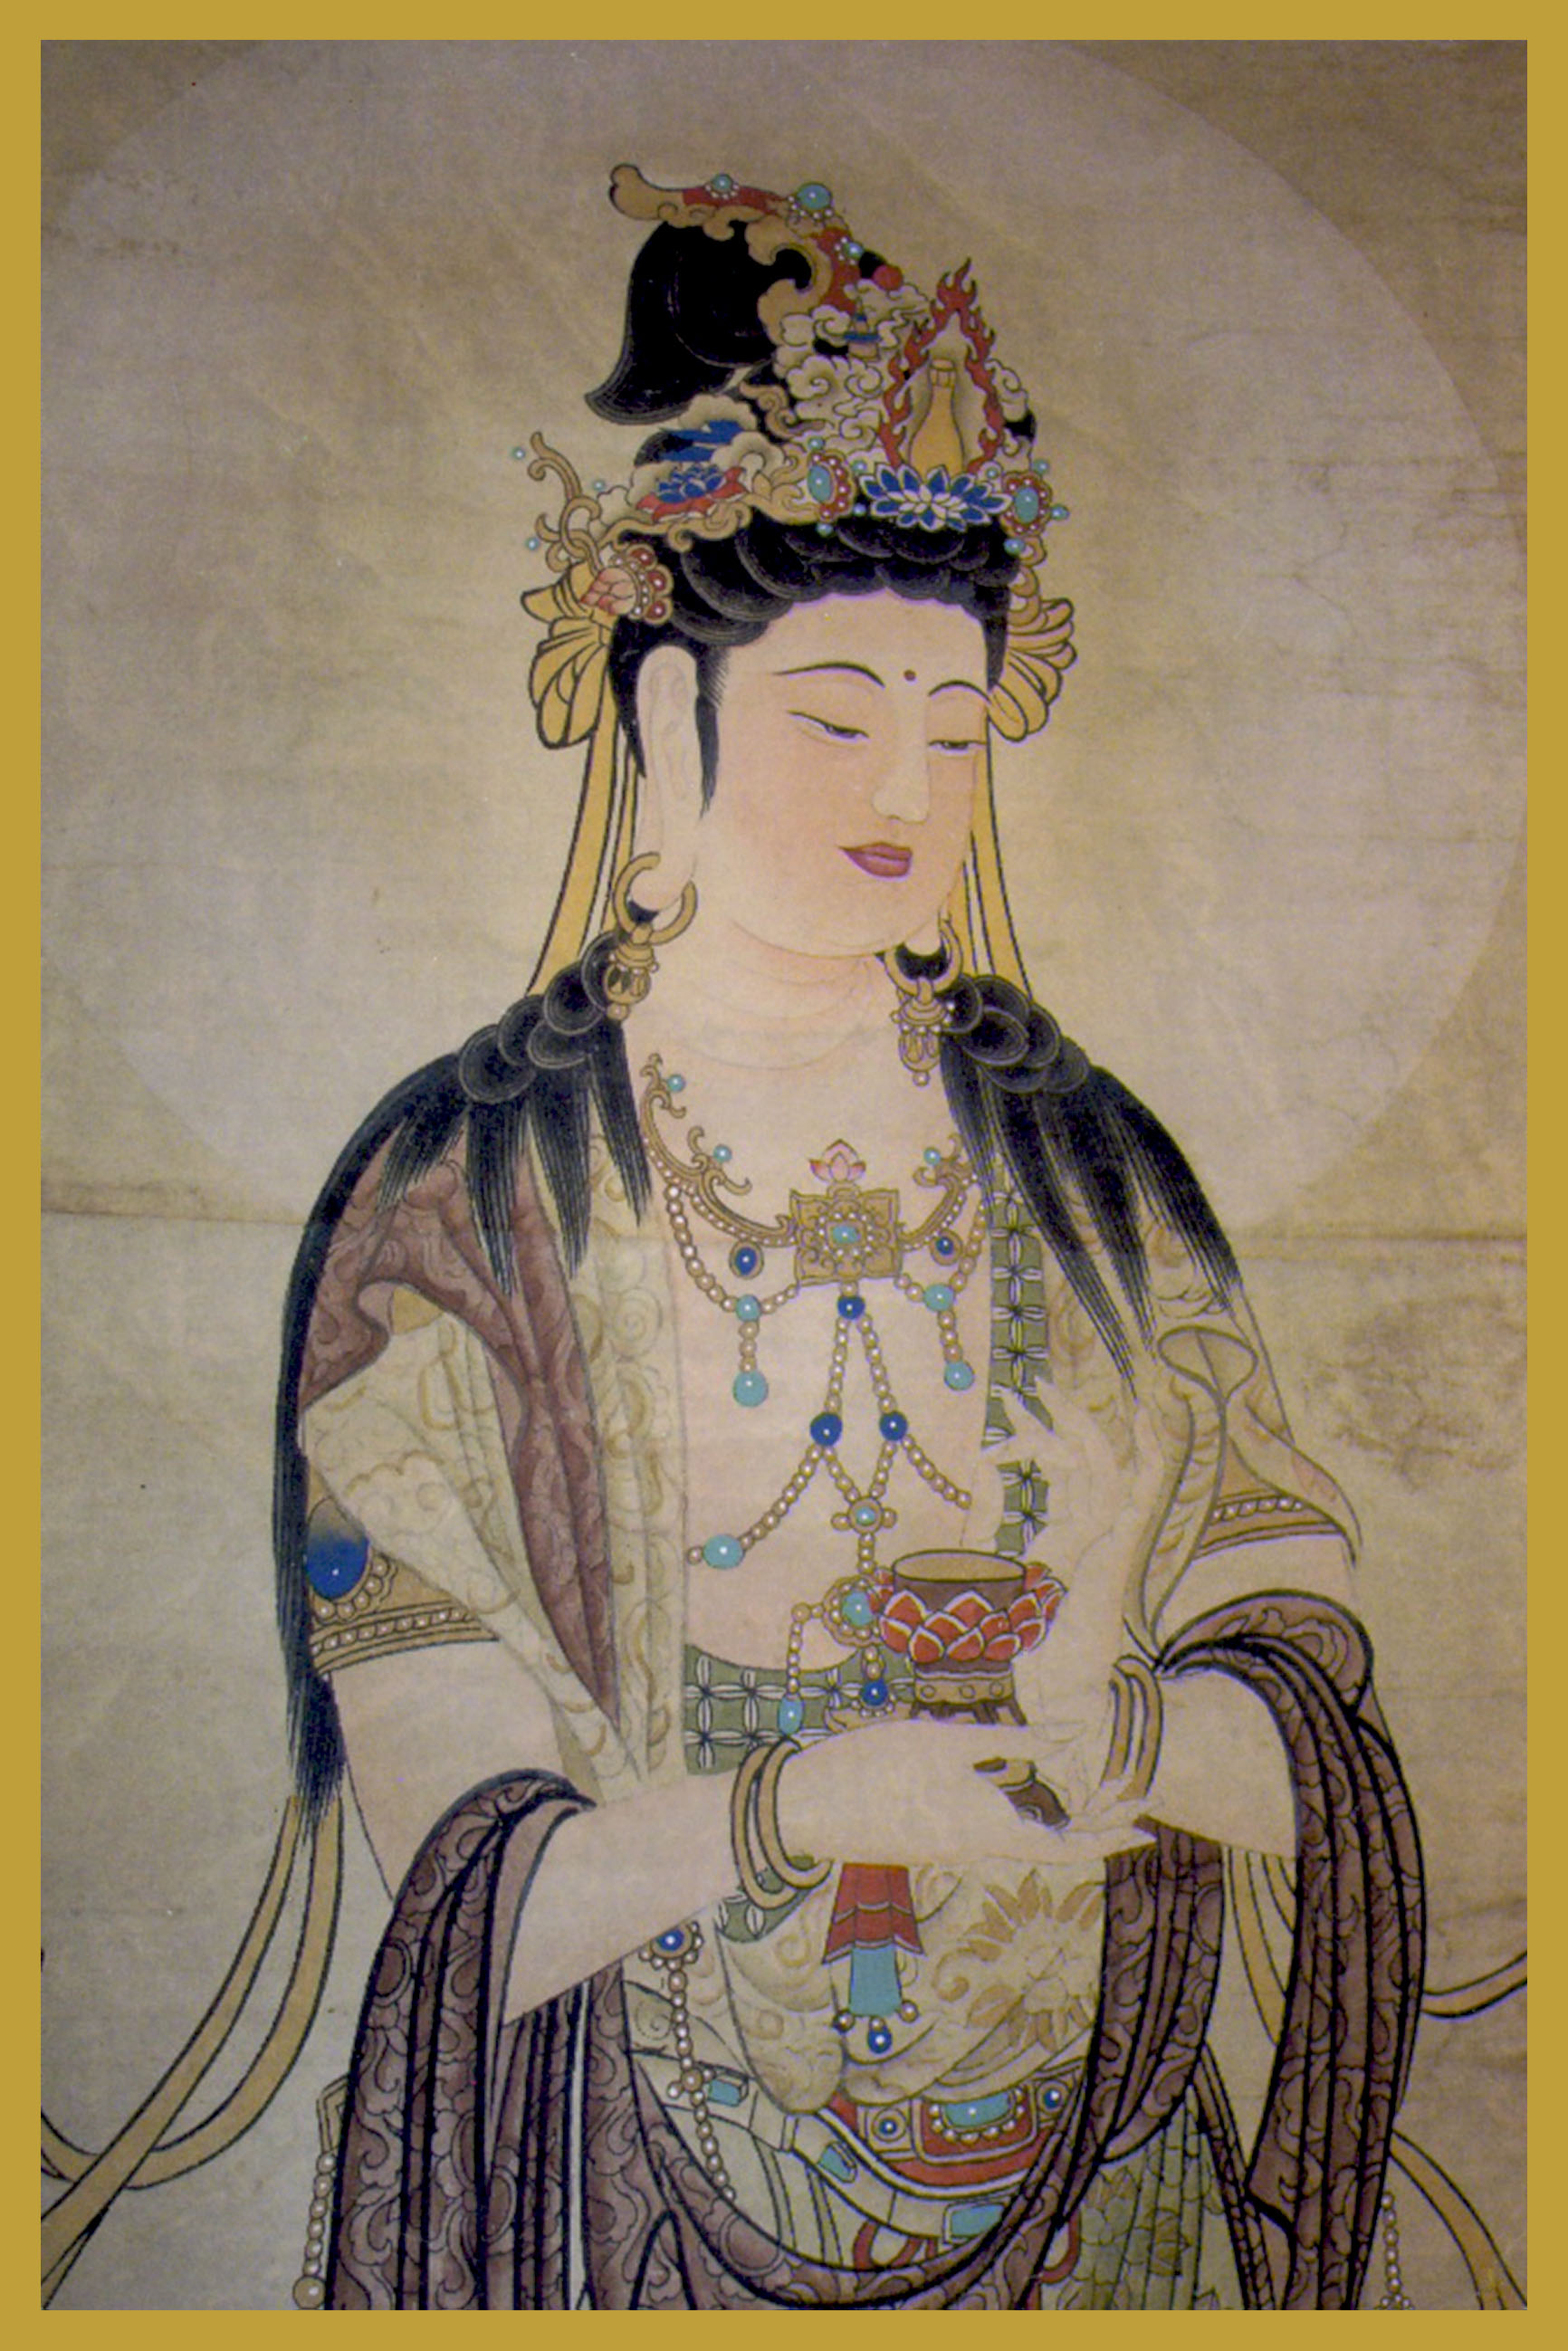 KY-CP - Kuan Yin With CupBodhisattva of CompassionKuan Shih Yin is the Bodhisattva of Compassion. Her Name means